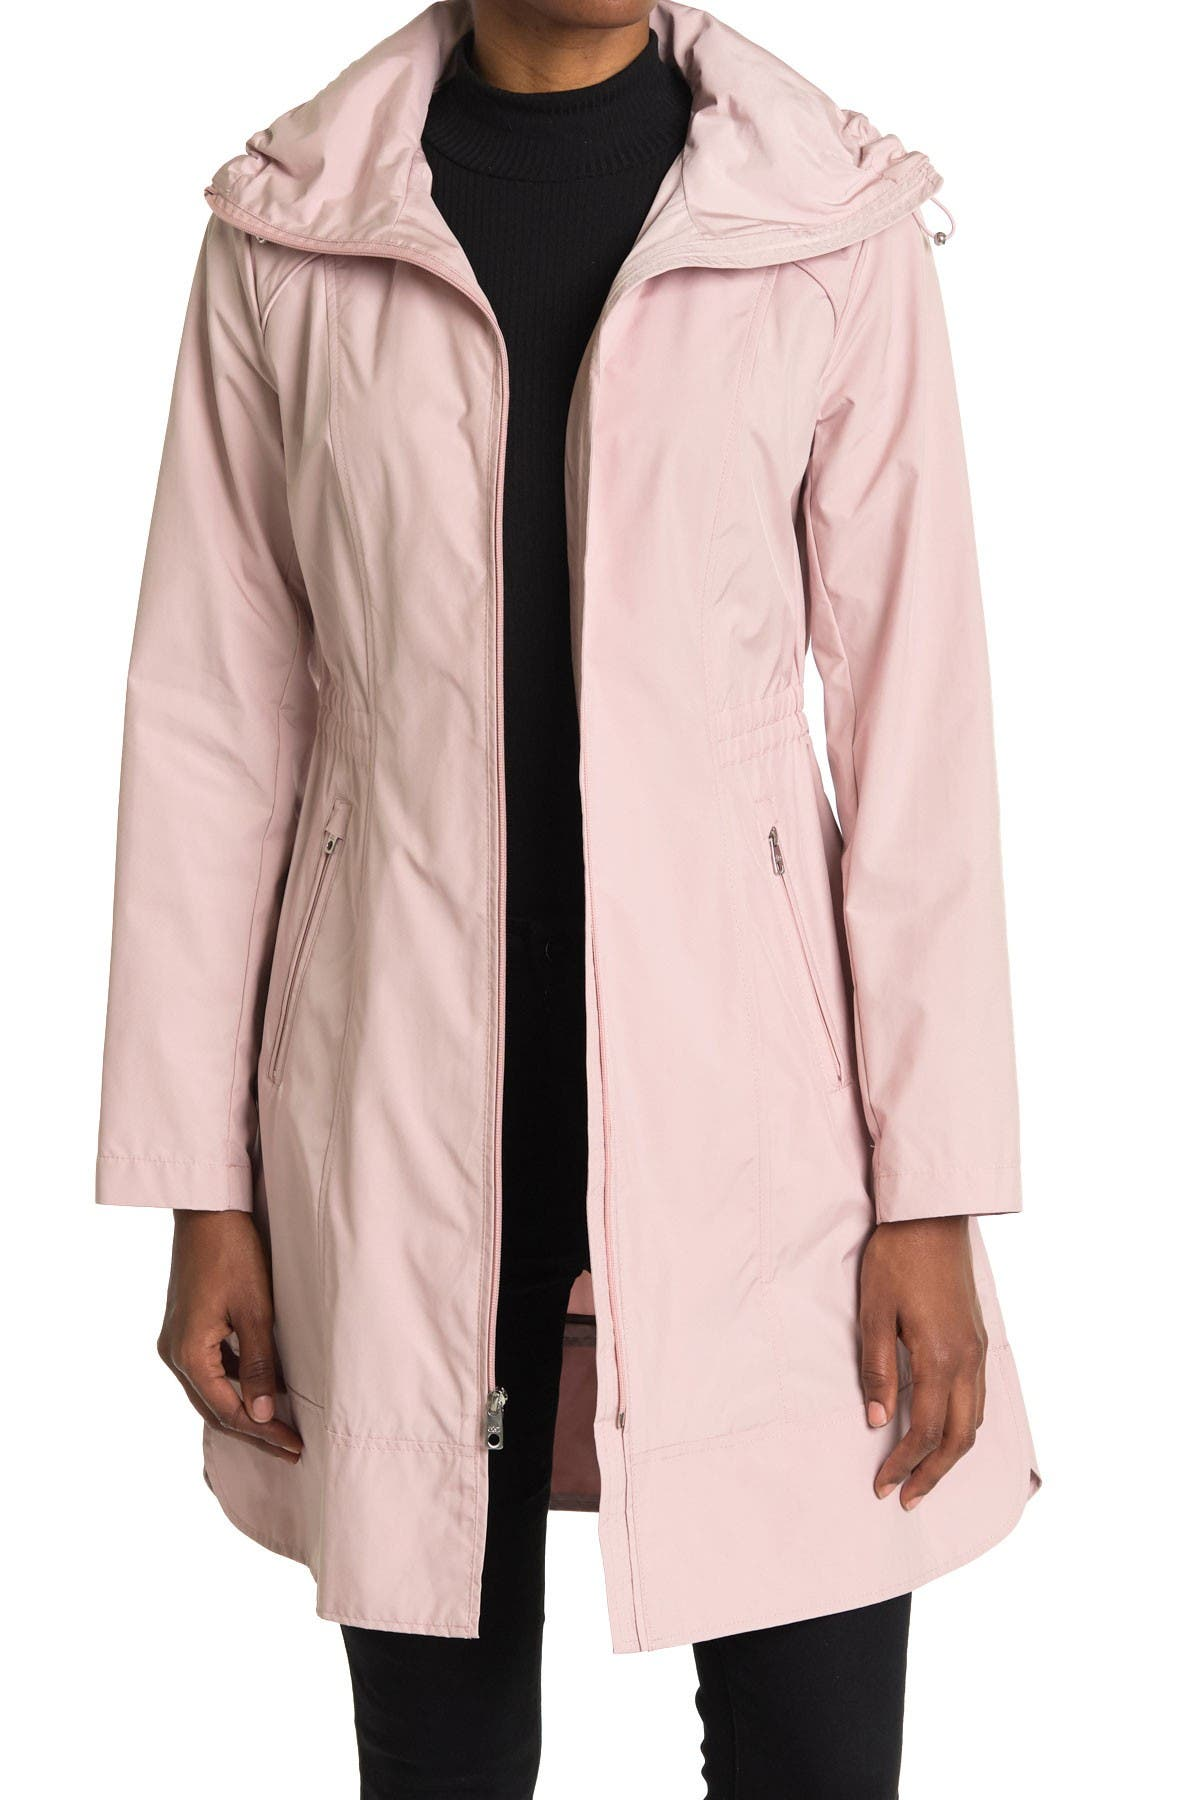 Image of Cole Haan Packable Hooded Rain Coat